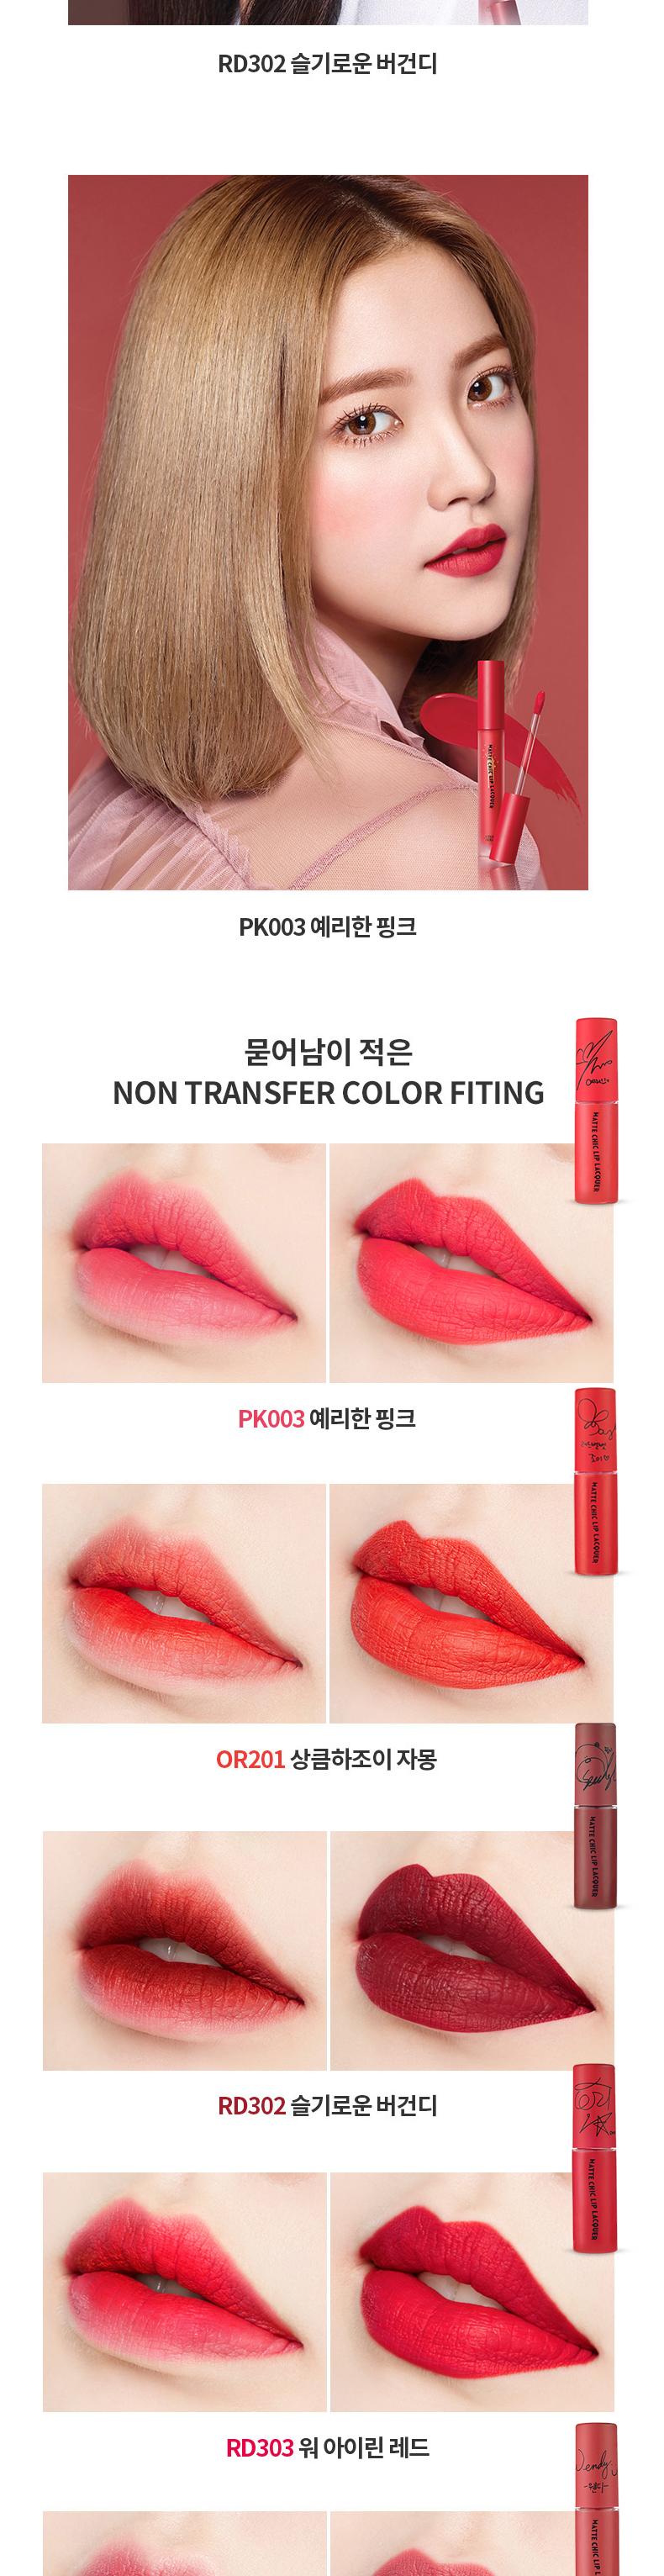 [ETUDE HOUSE] RED VELVET MATTE CHIC LIP LACQUER